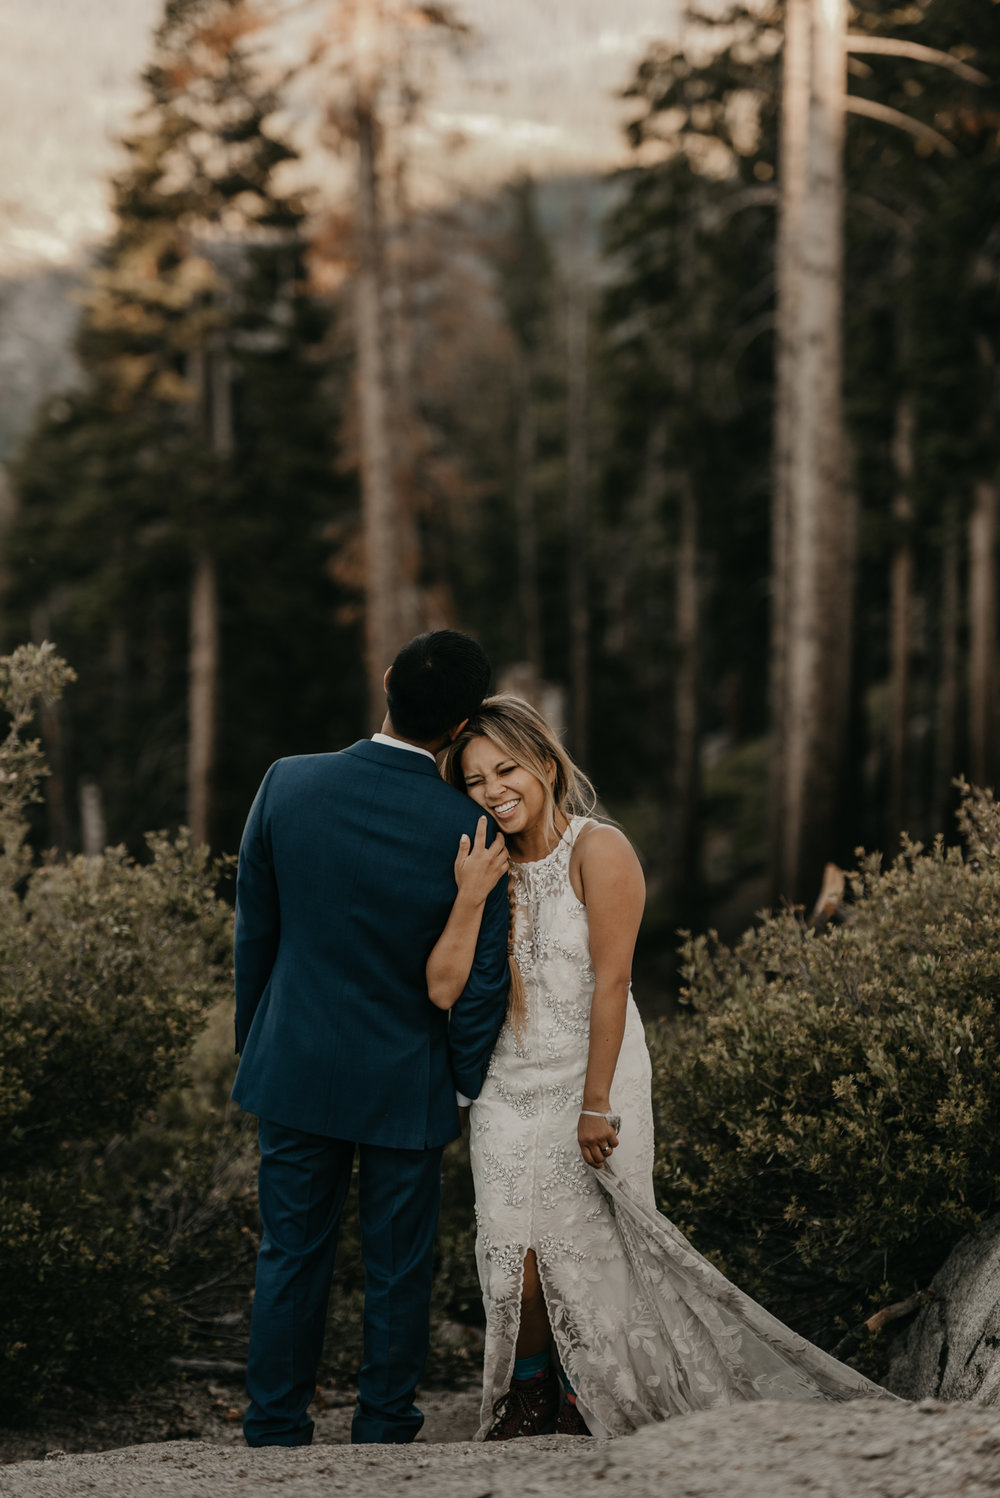 © Isaiah + Taylor Photography - Yosemite Nationanl Park Elopement Photographer - Evergreen Lodge Wedding-024.jpg